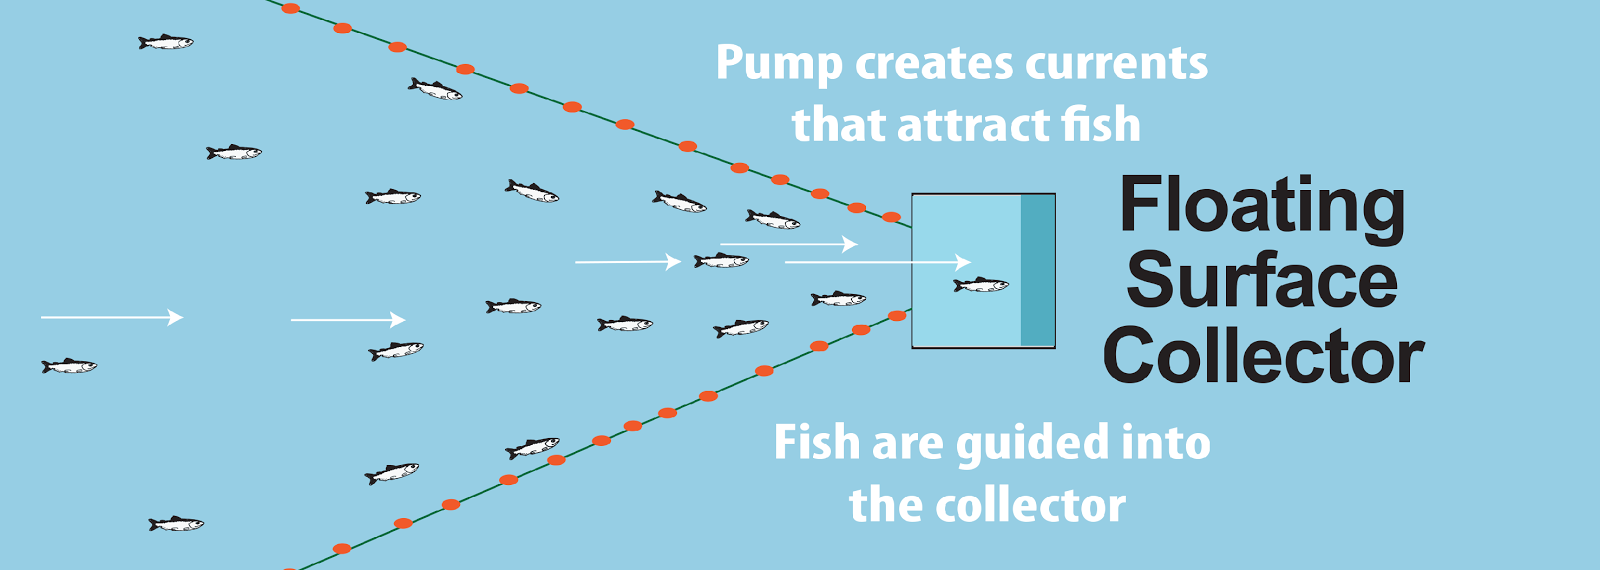 Diagram of a floating surface collector